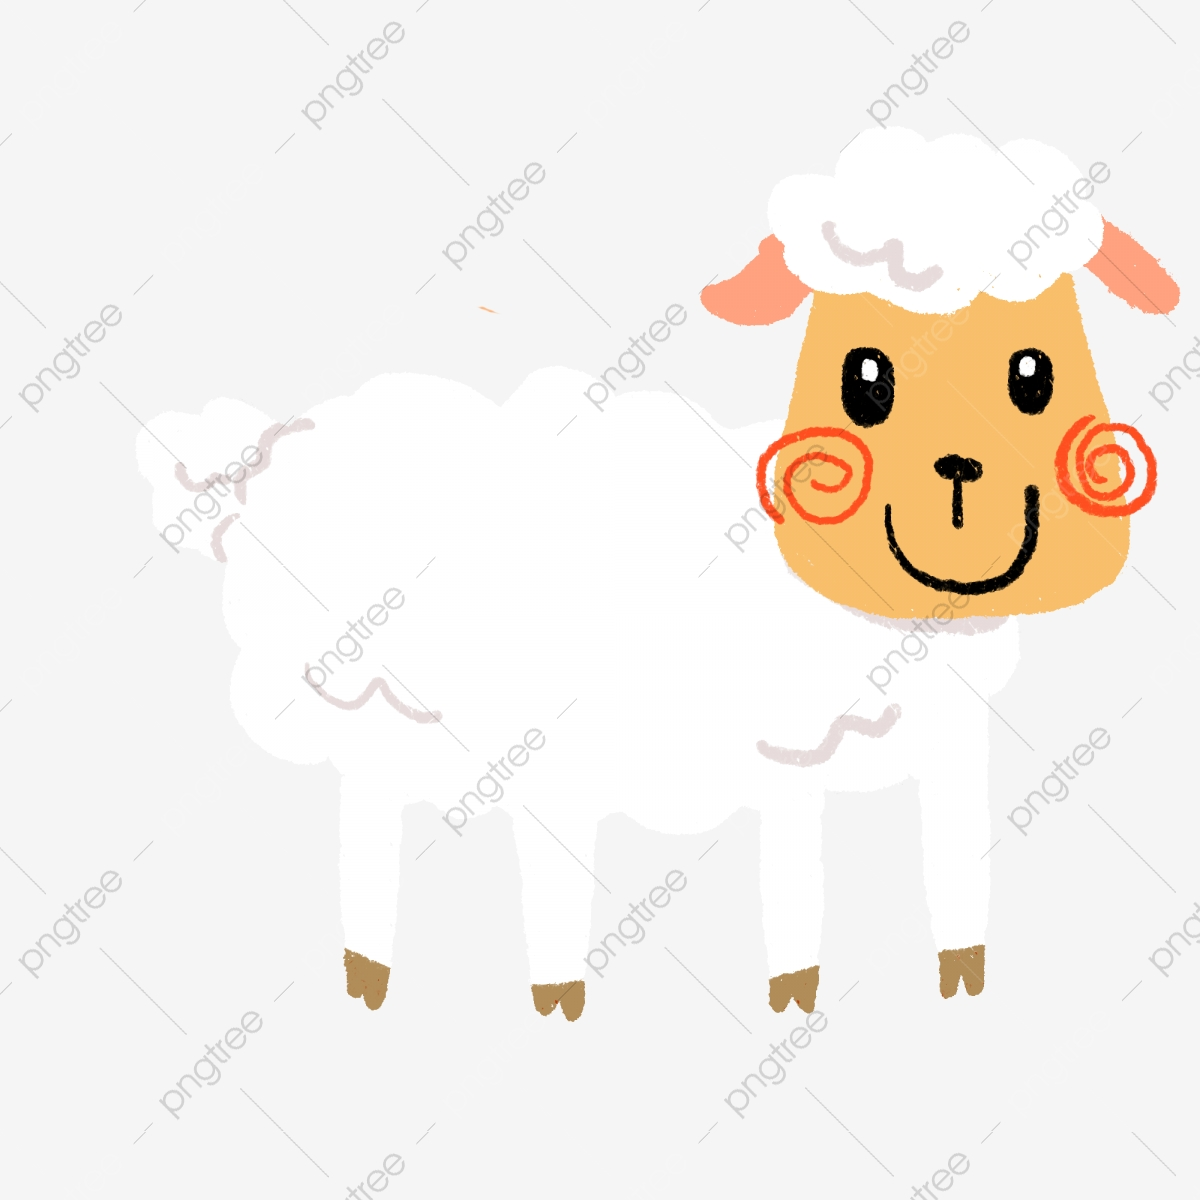 Hand Painted Sheep Eid Al Adha Sheep Clipart Sheep White Png Transparent Clipart Image And Psd File For Free Download